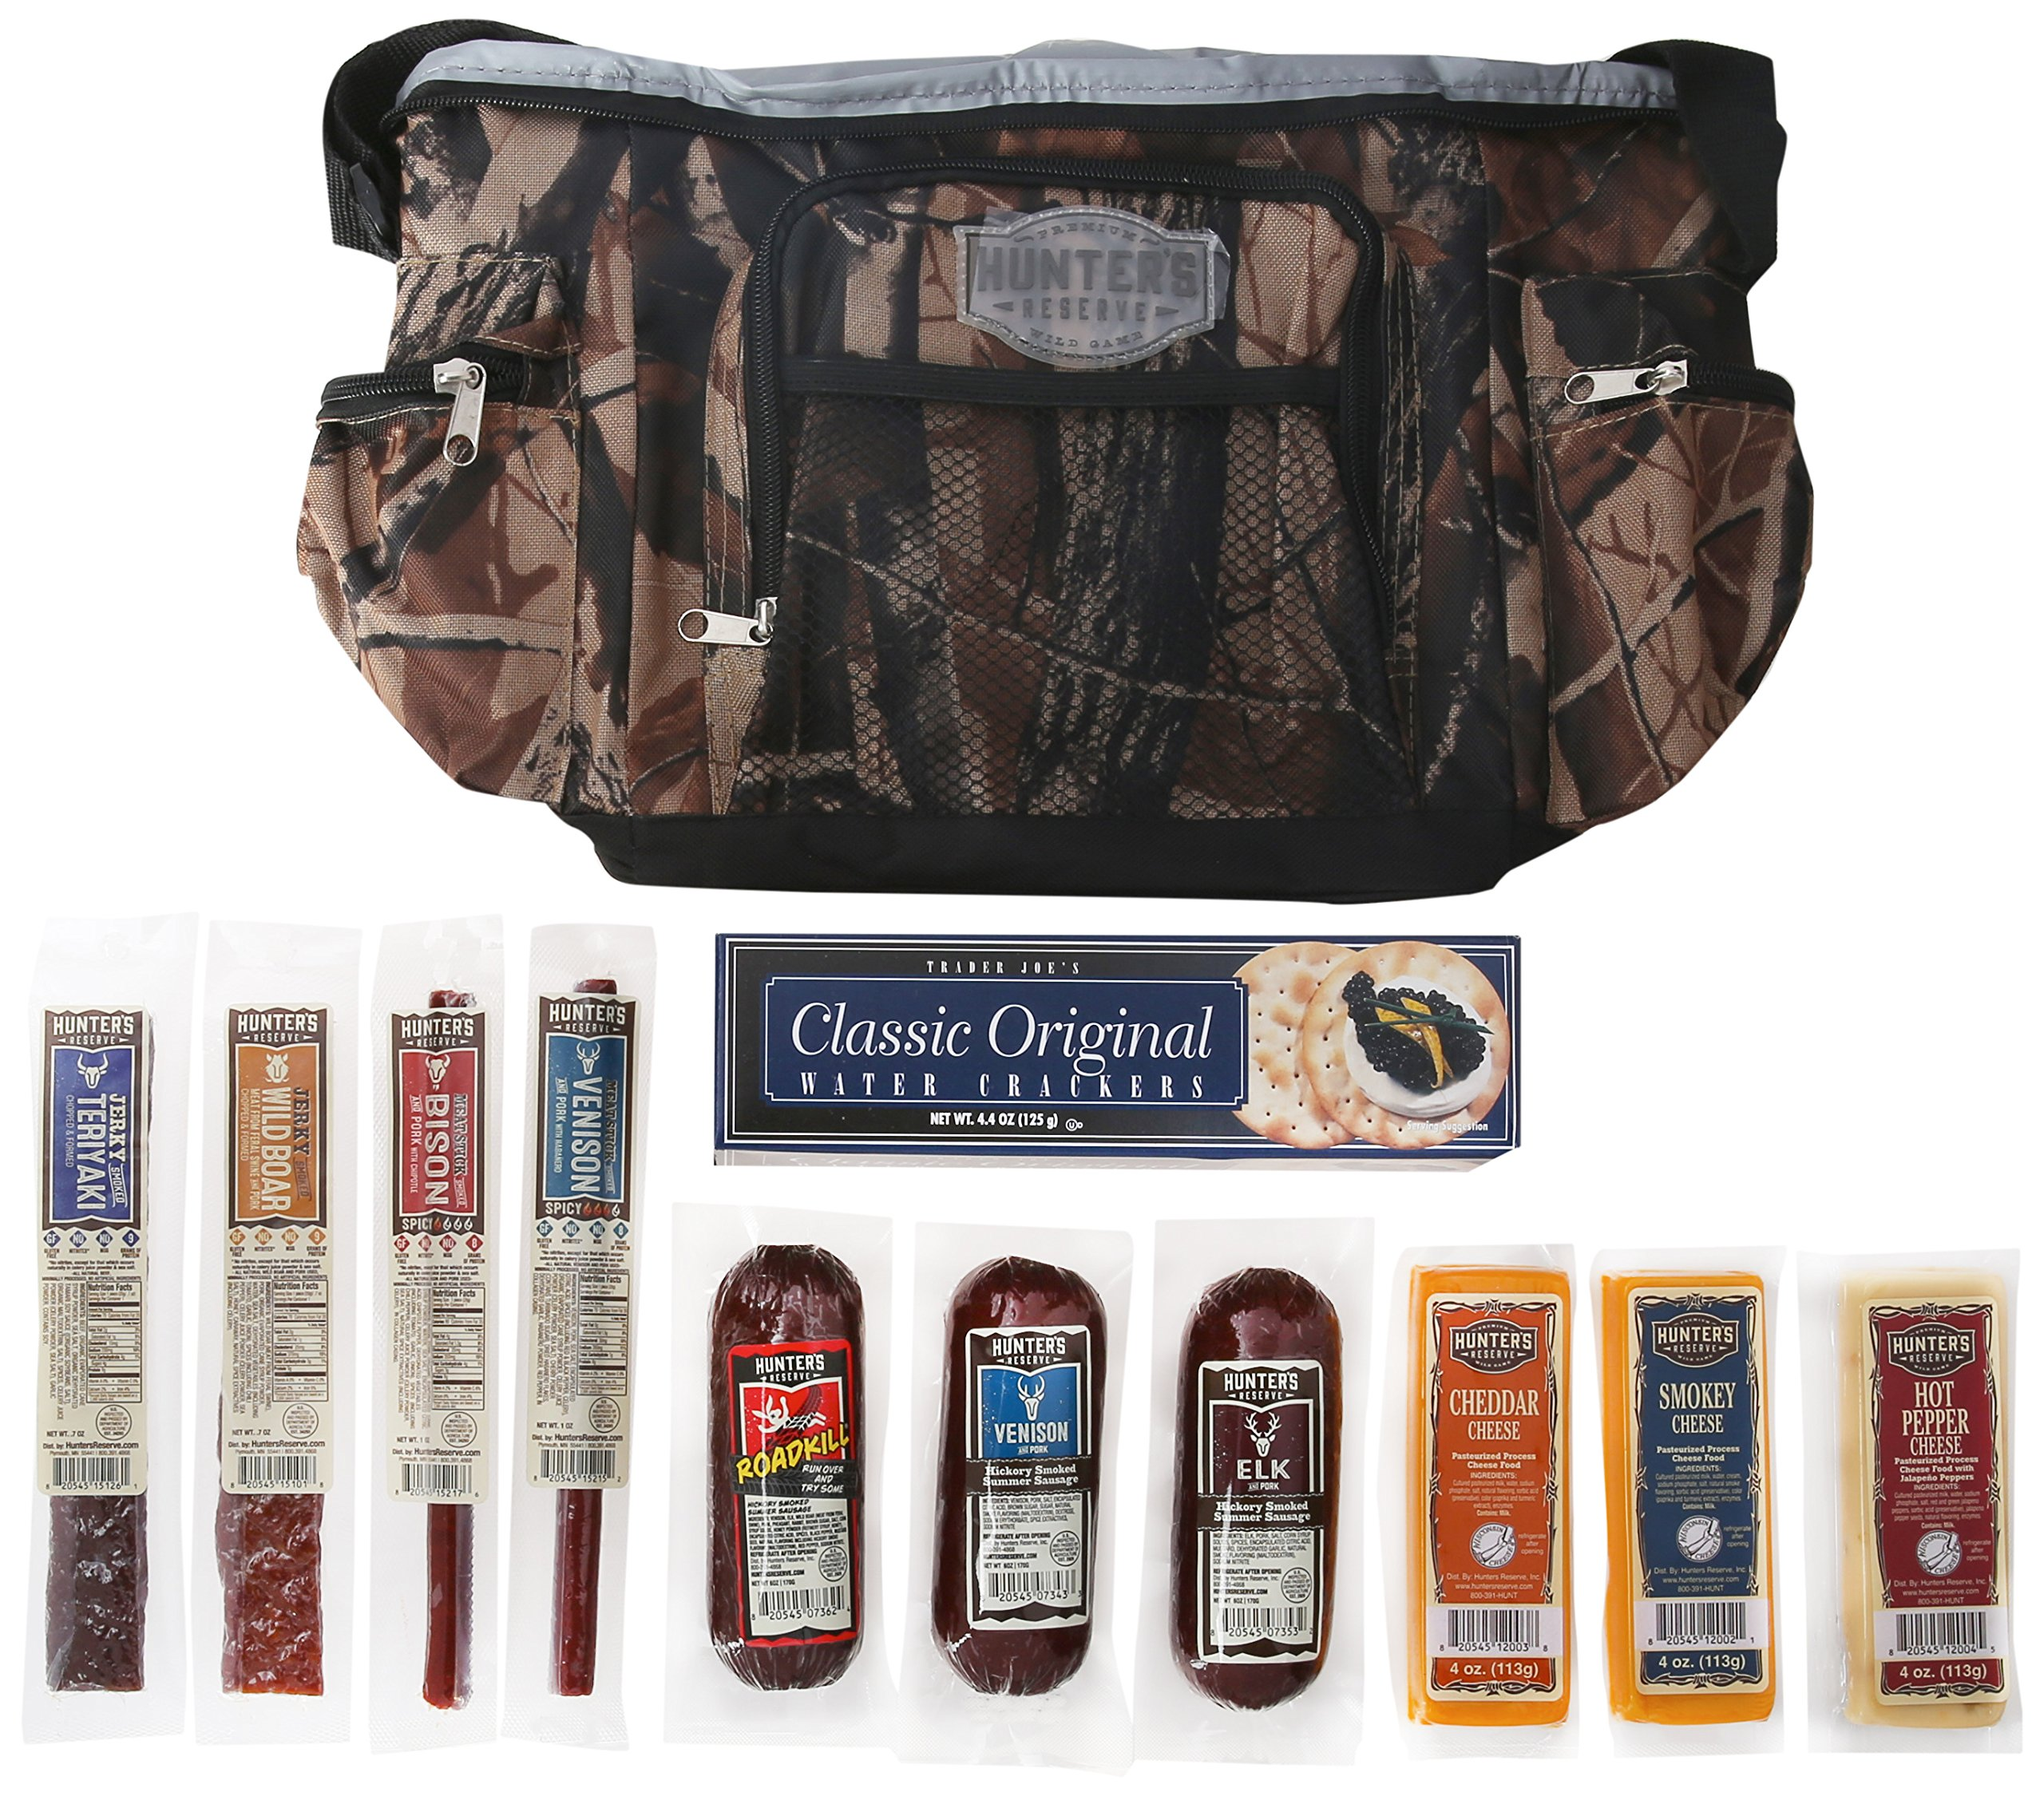 Hunters Reserve ''Wild Game'' Camo Cooler Bag with Assorted Premium Meats & Cheeses, 50 Ounce